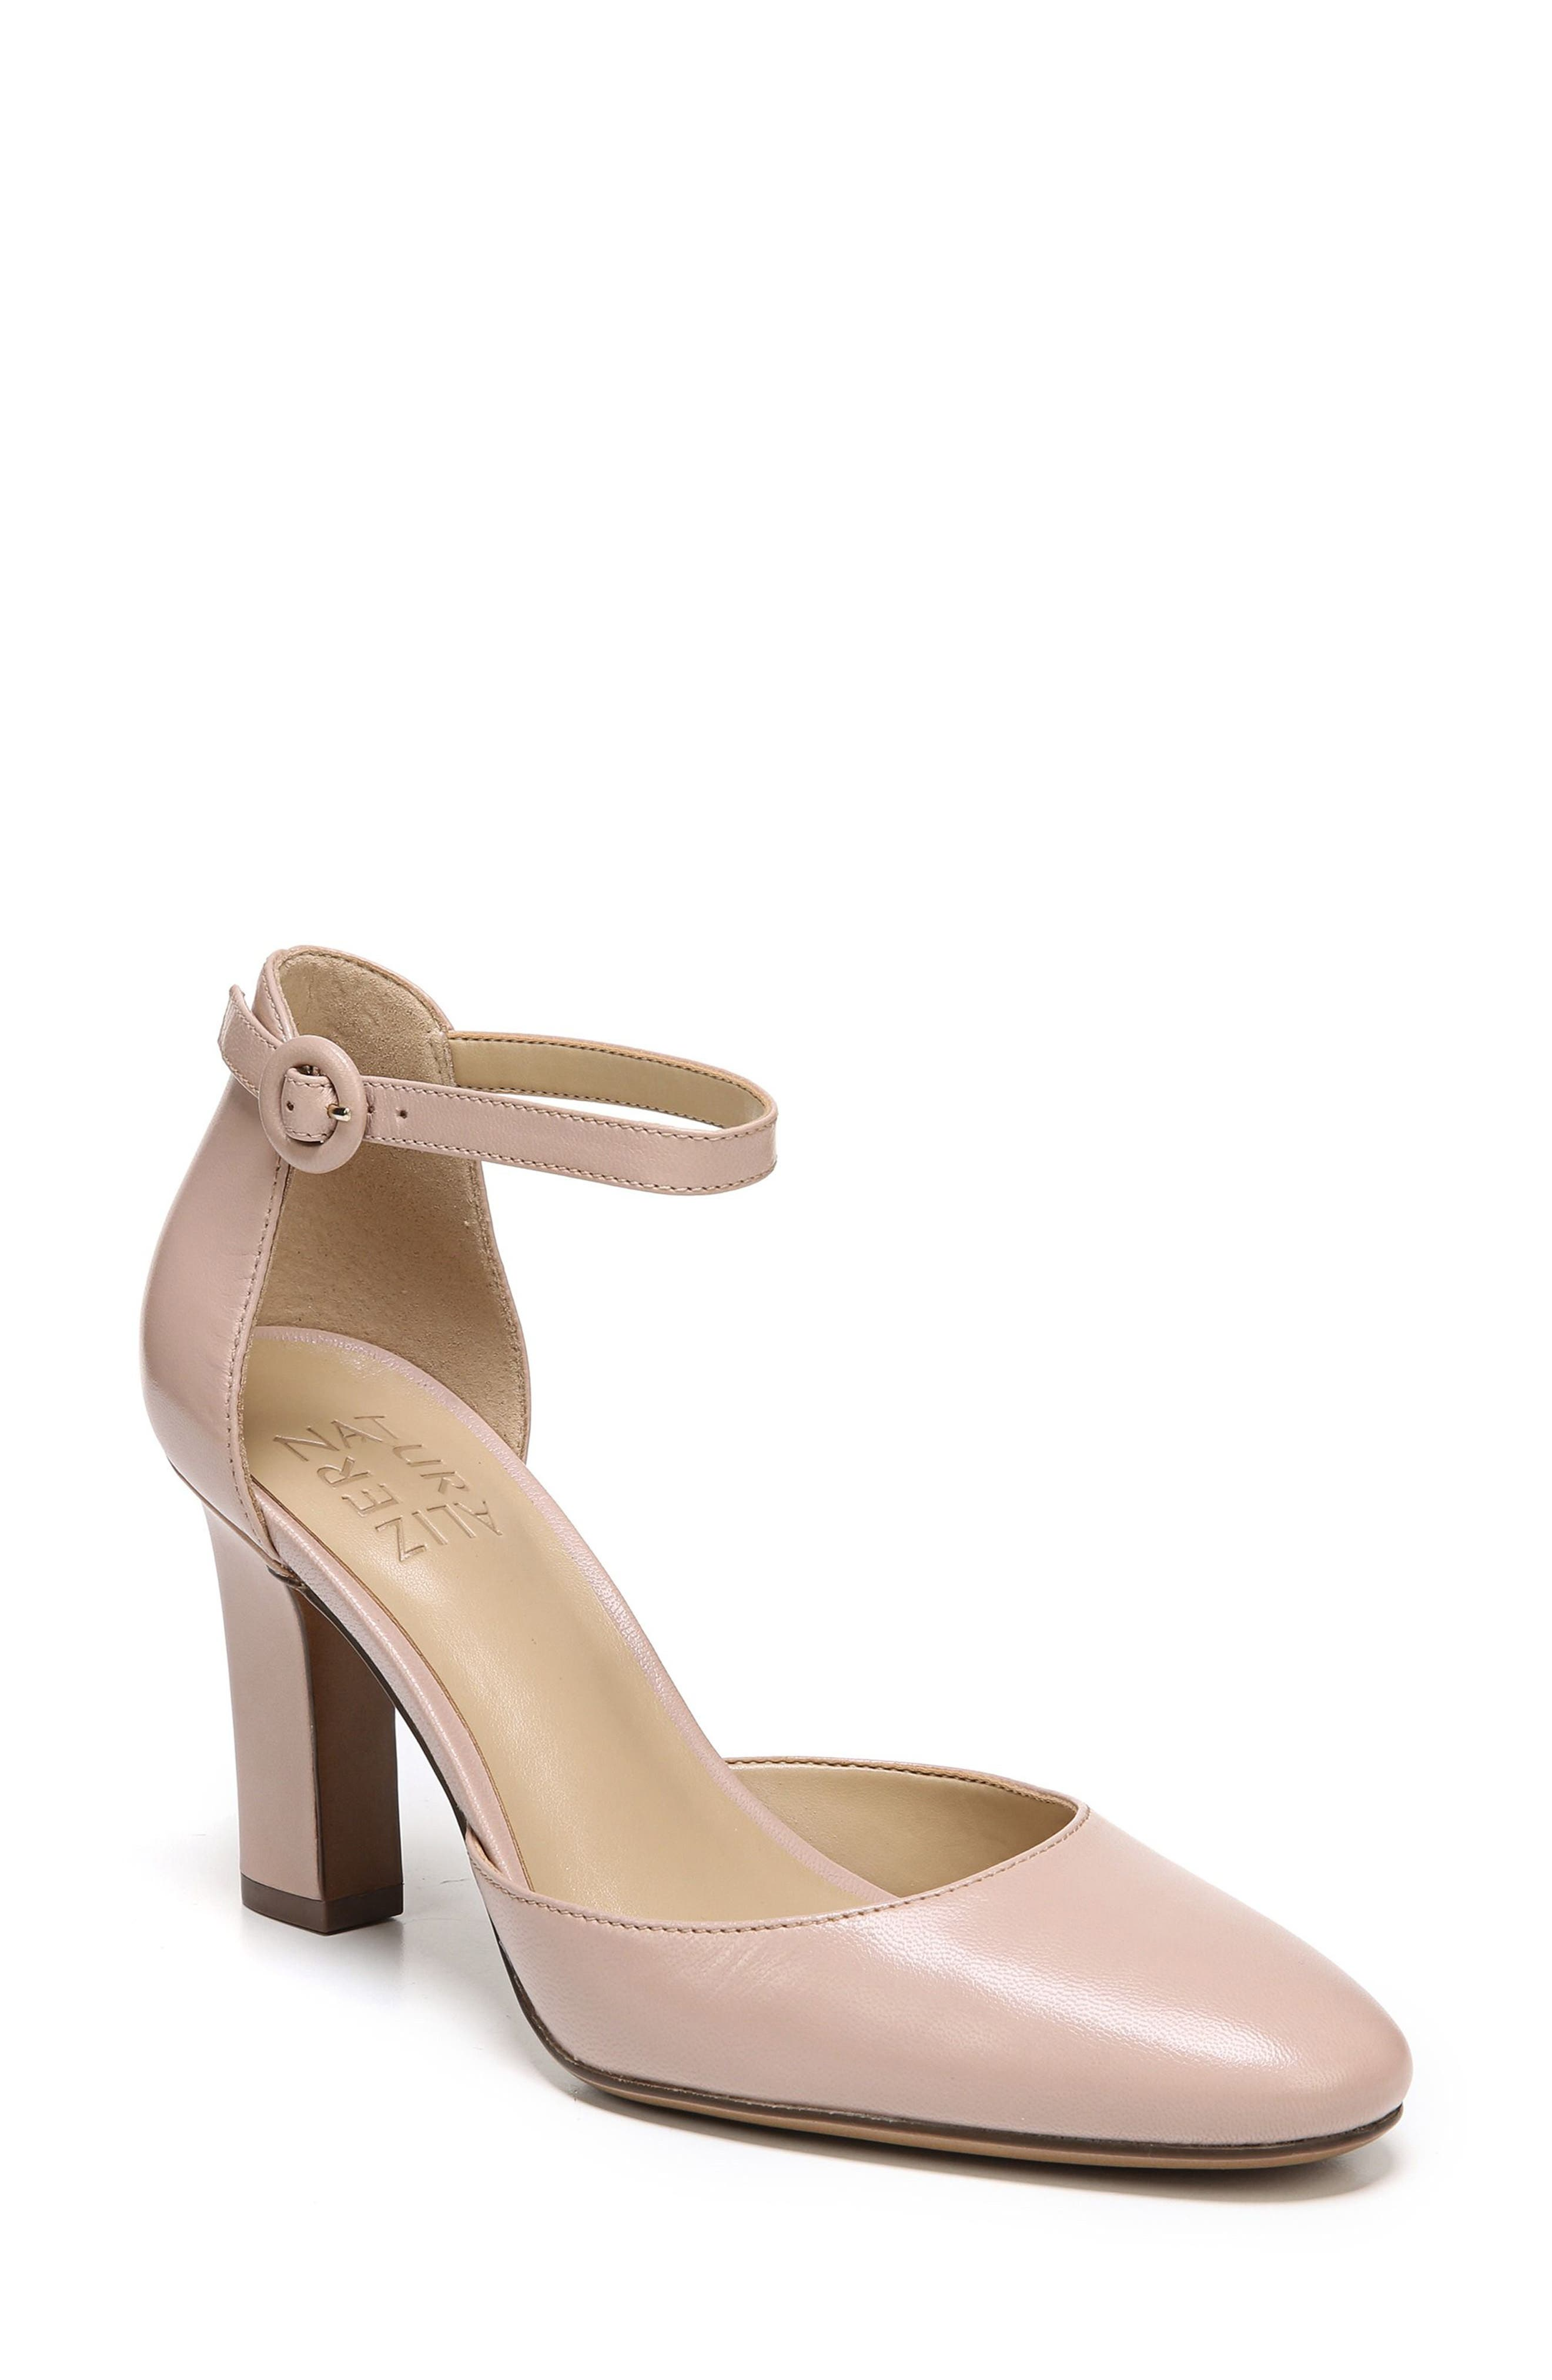 Main Image - Naturalizer Gianna Ankle Strap Pump (Women)